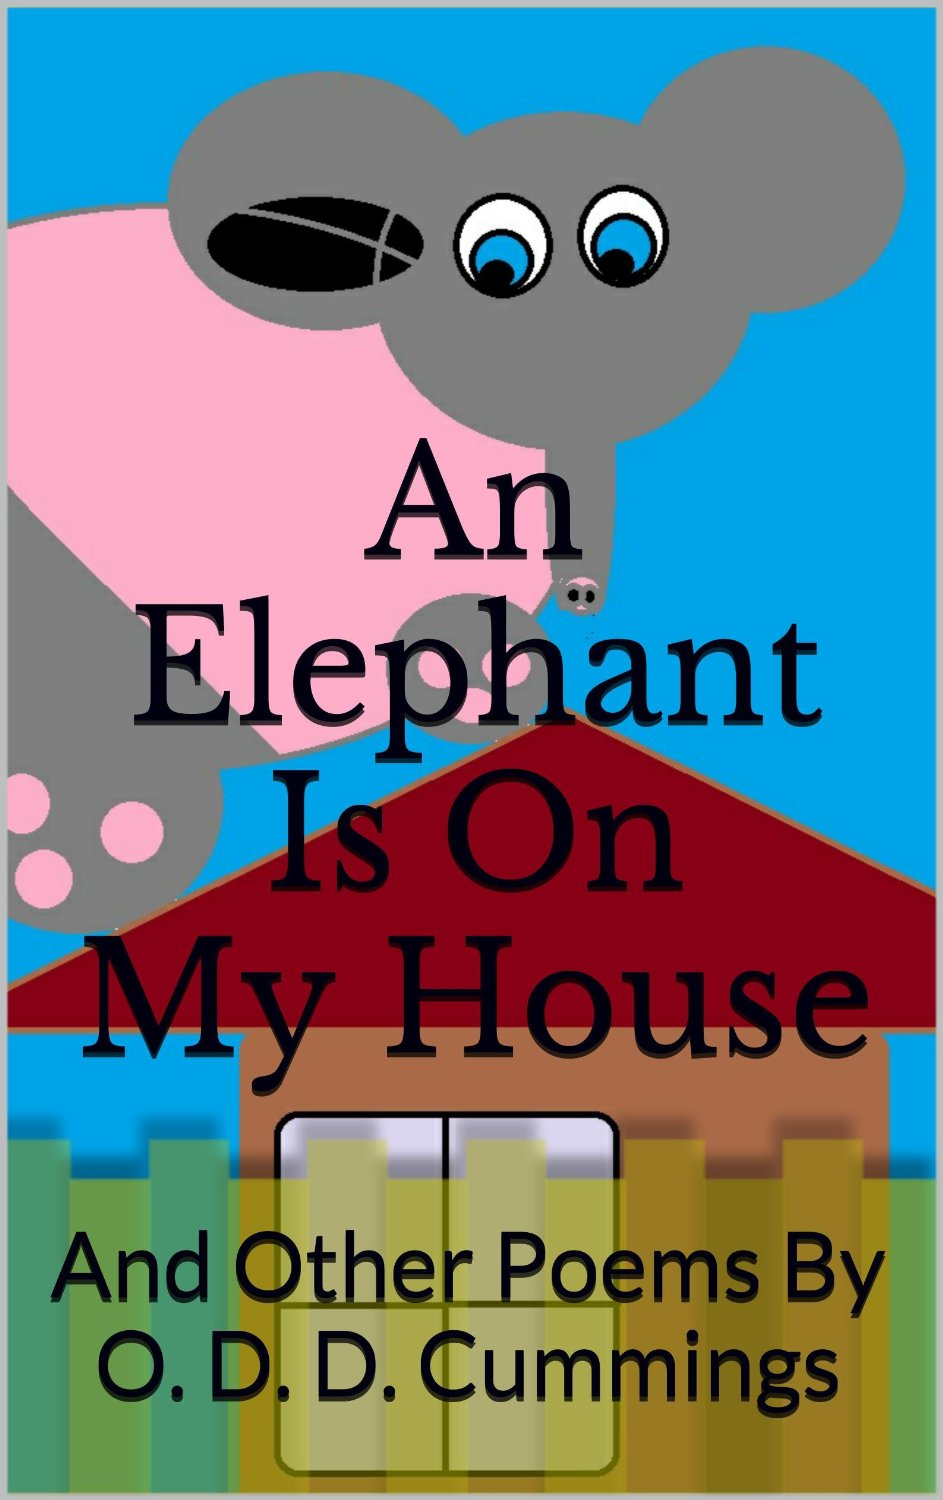 An Elephant Is On My House: And Other Poems By O. D. D. Cummings, Poems for kids By O. D. D. Cummings, Three Tigers And A Hot Air Balloon poem, best poems for kids: Three Tigers And A Hot Air Balloon poem, funny poems for kids, poetry books for kids, collection of poems for kids, poems for kids by O.D.D. Cummings, Three Tigers And A Hot Air Balloon poem by cummings